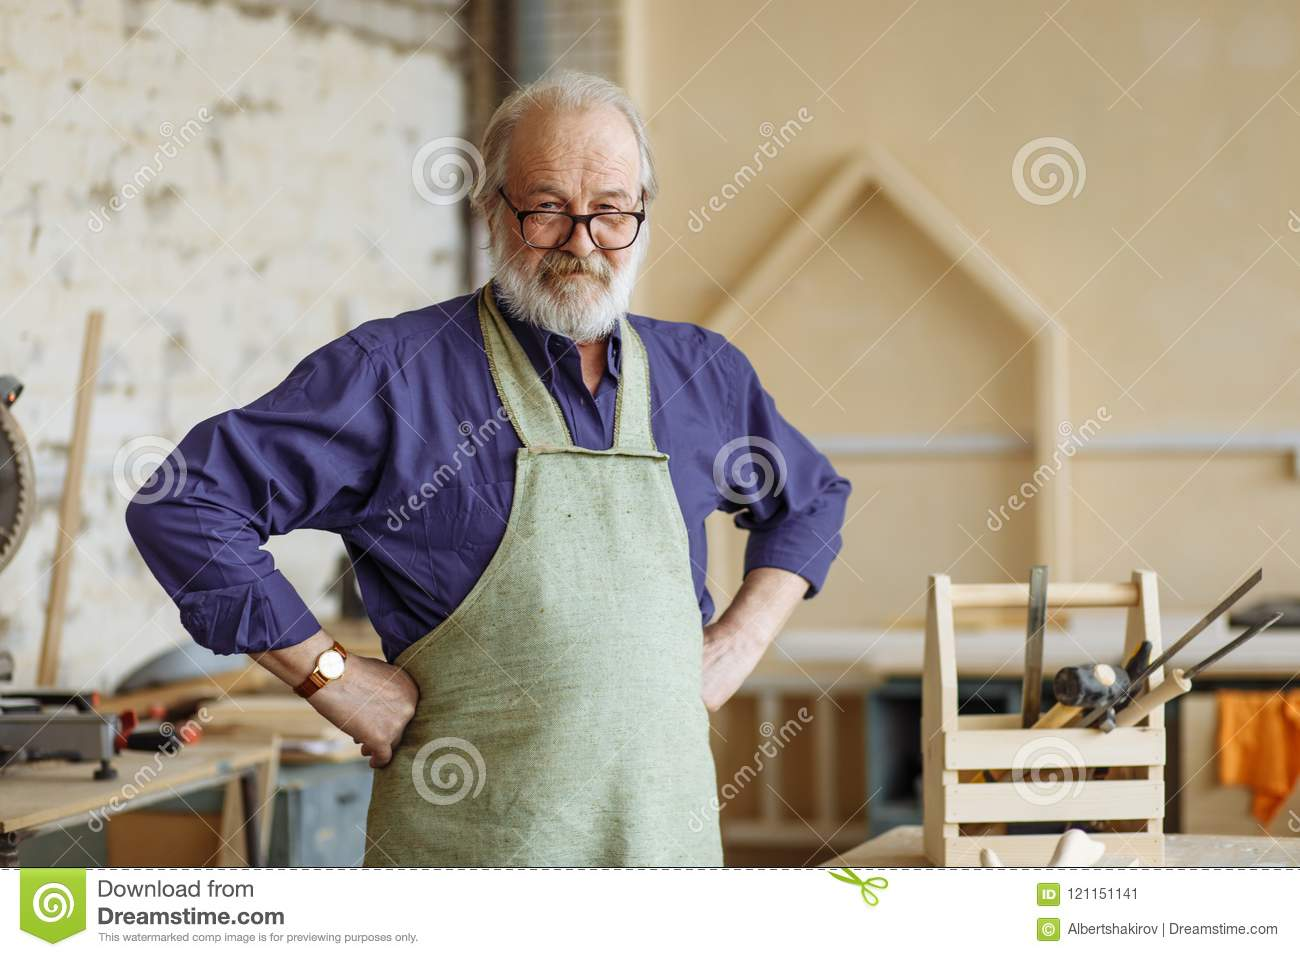 Confident and successful old grey haired man with hands on the hips